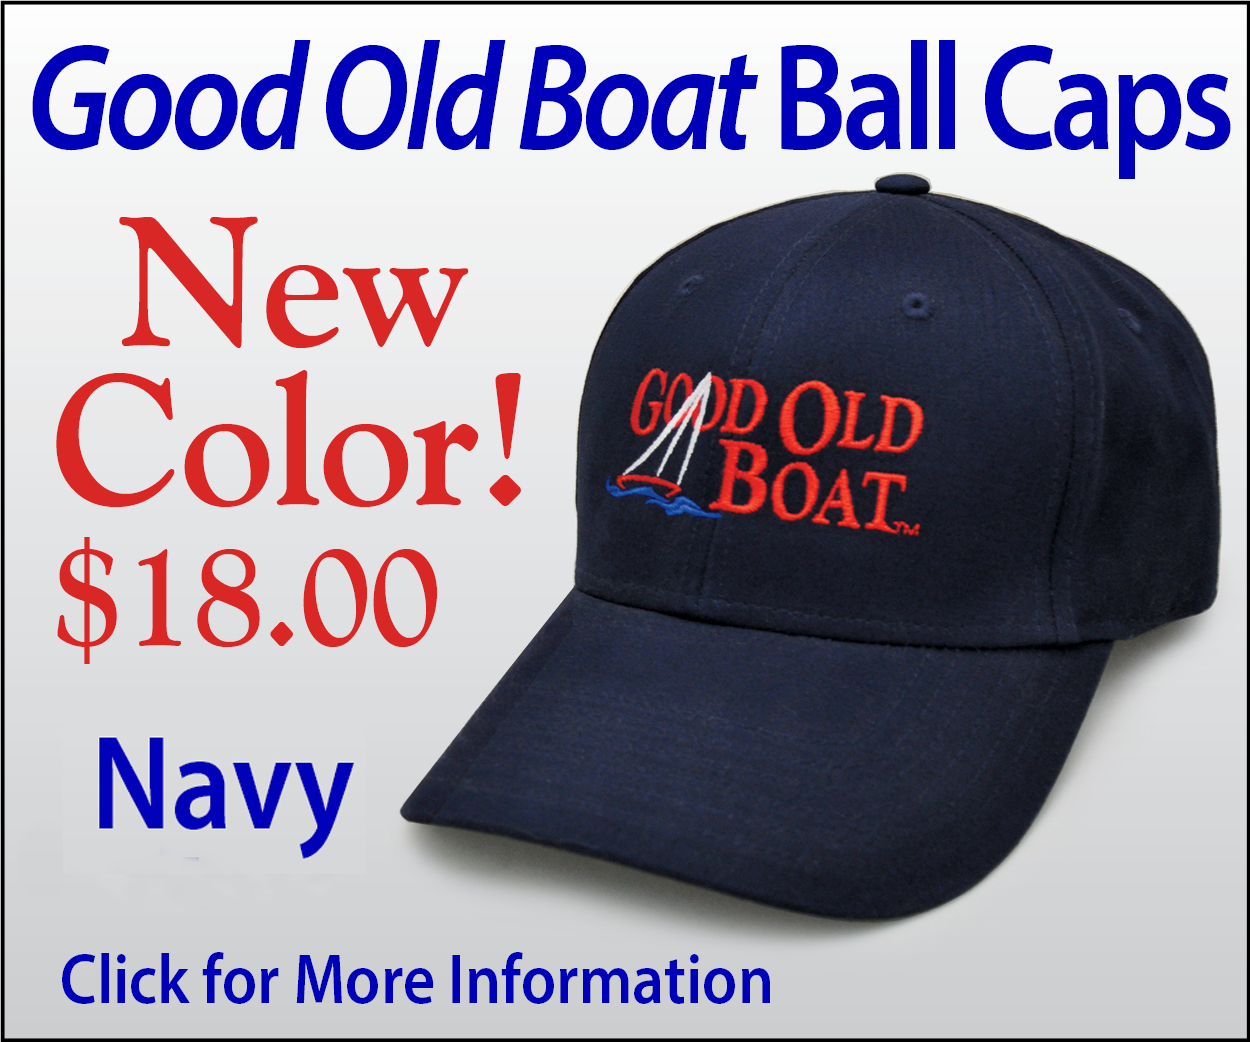 New Good Old Boat Ball Cap